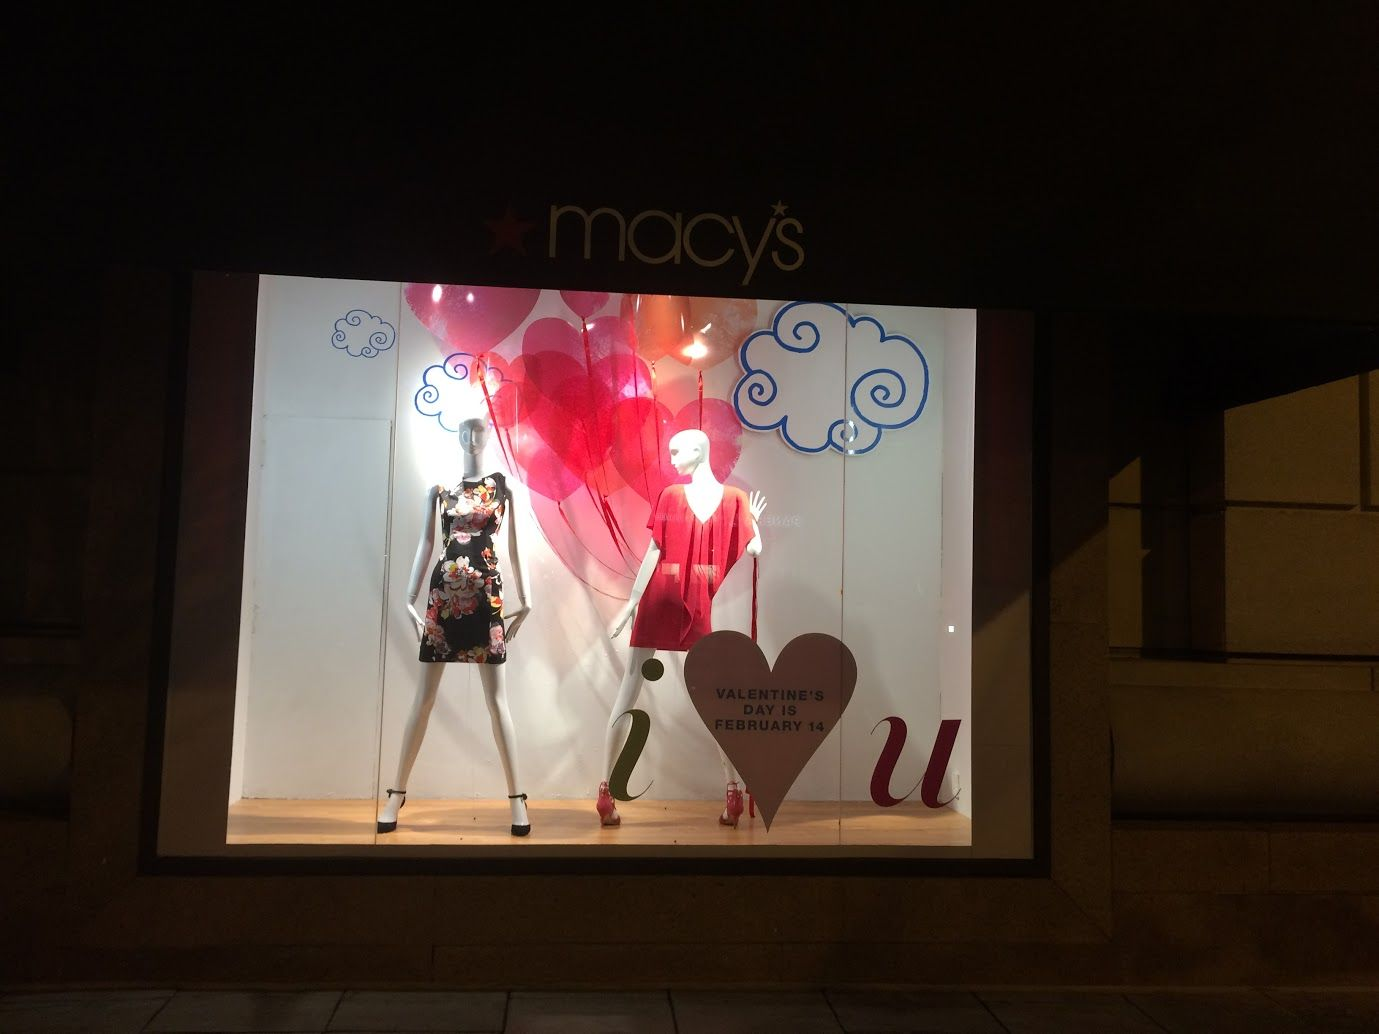 Macy's - Washington D.C.